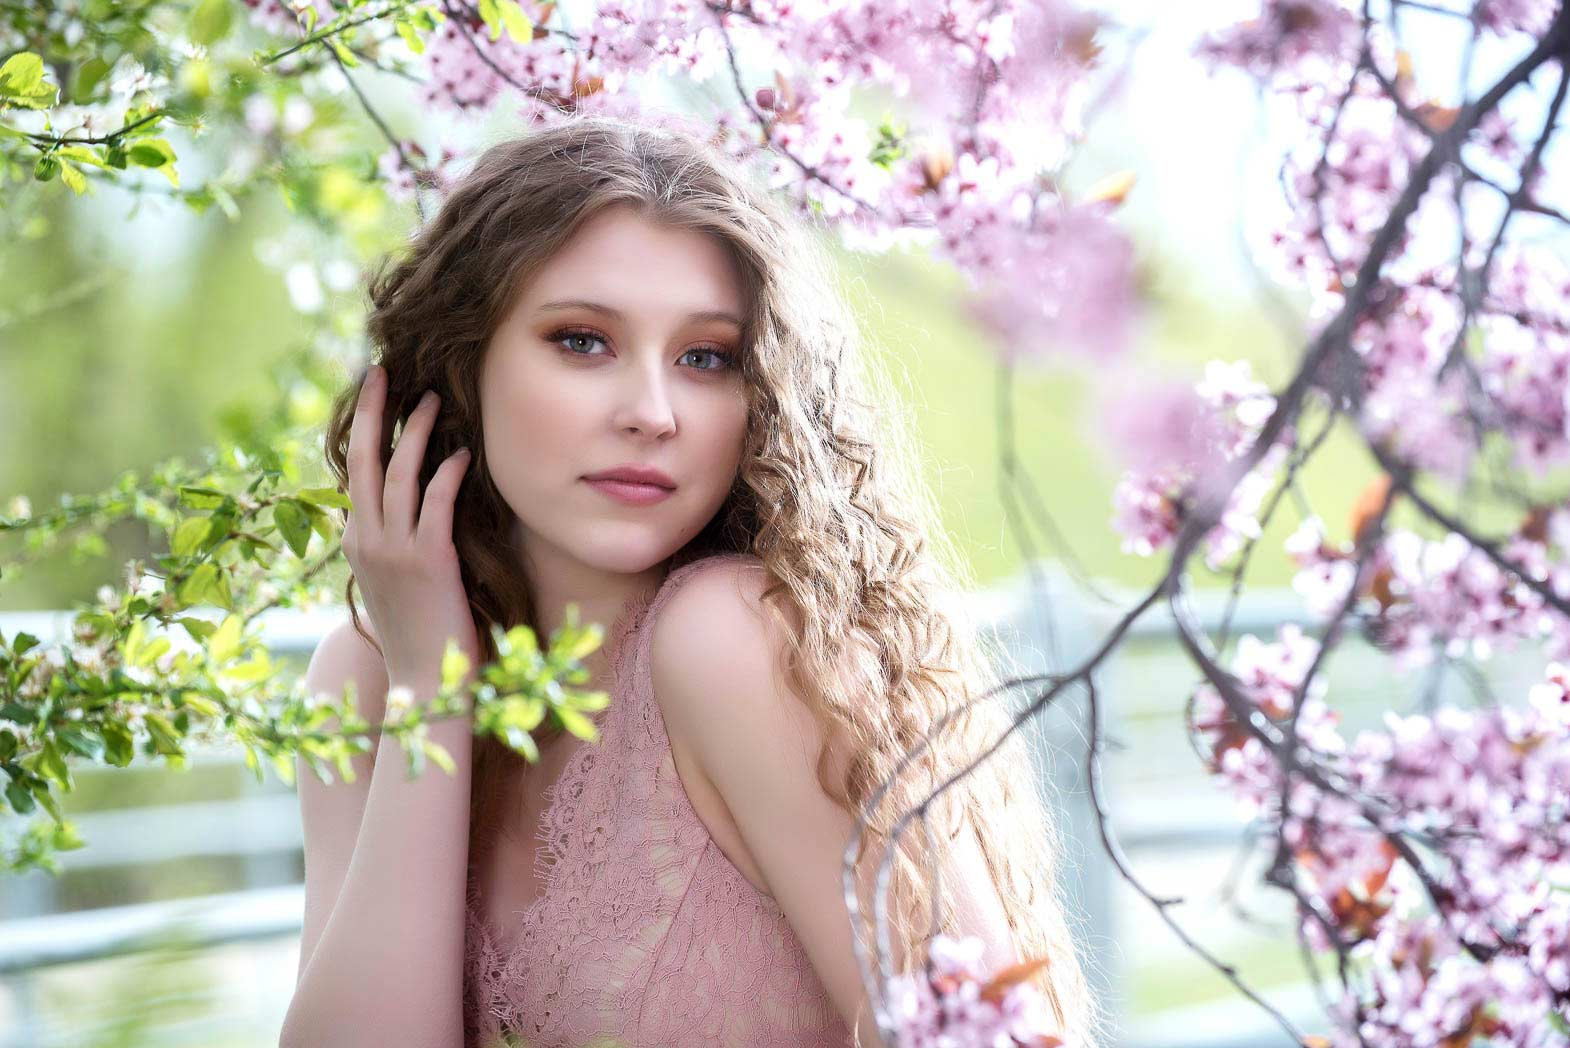 beautiful senior model surrounded by flowers